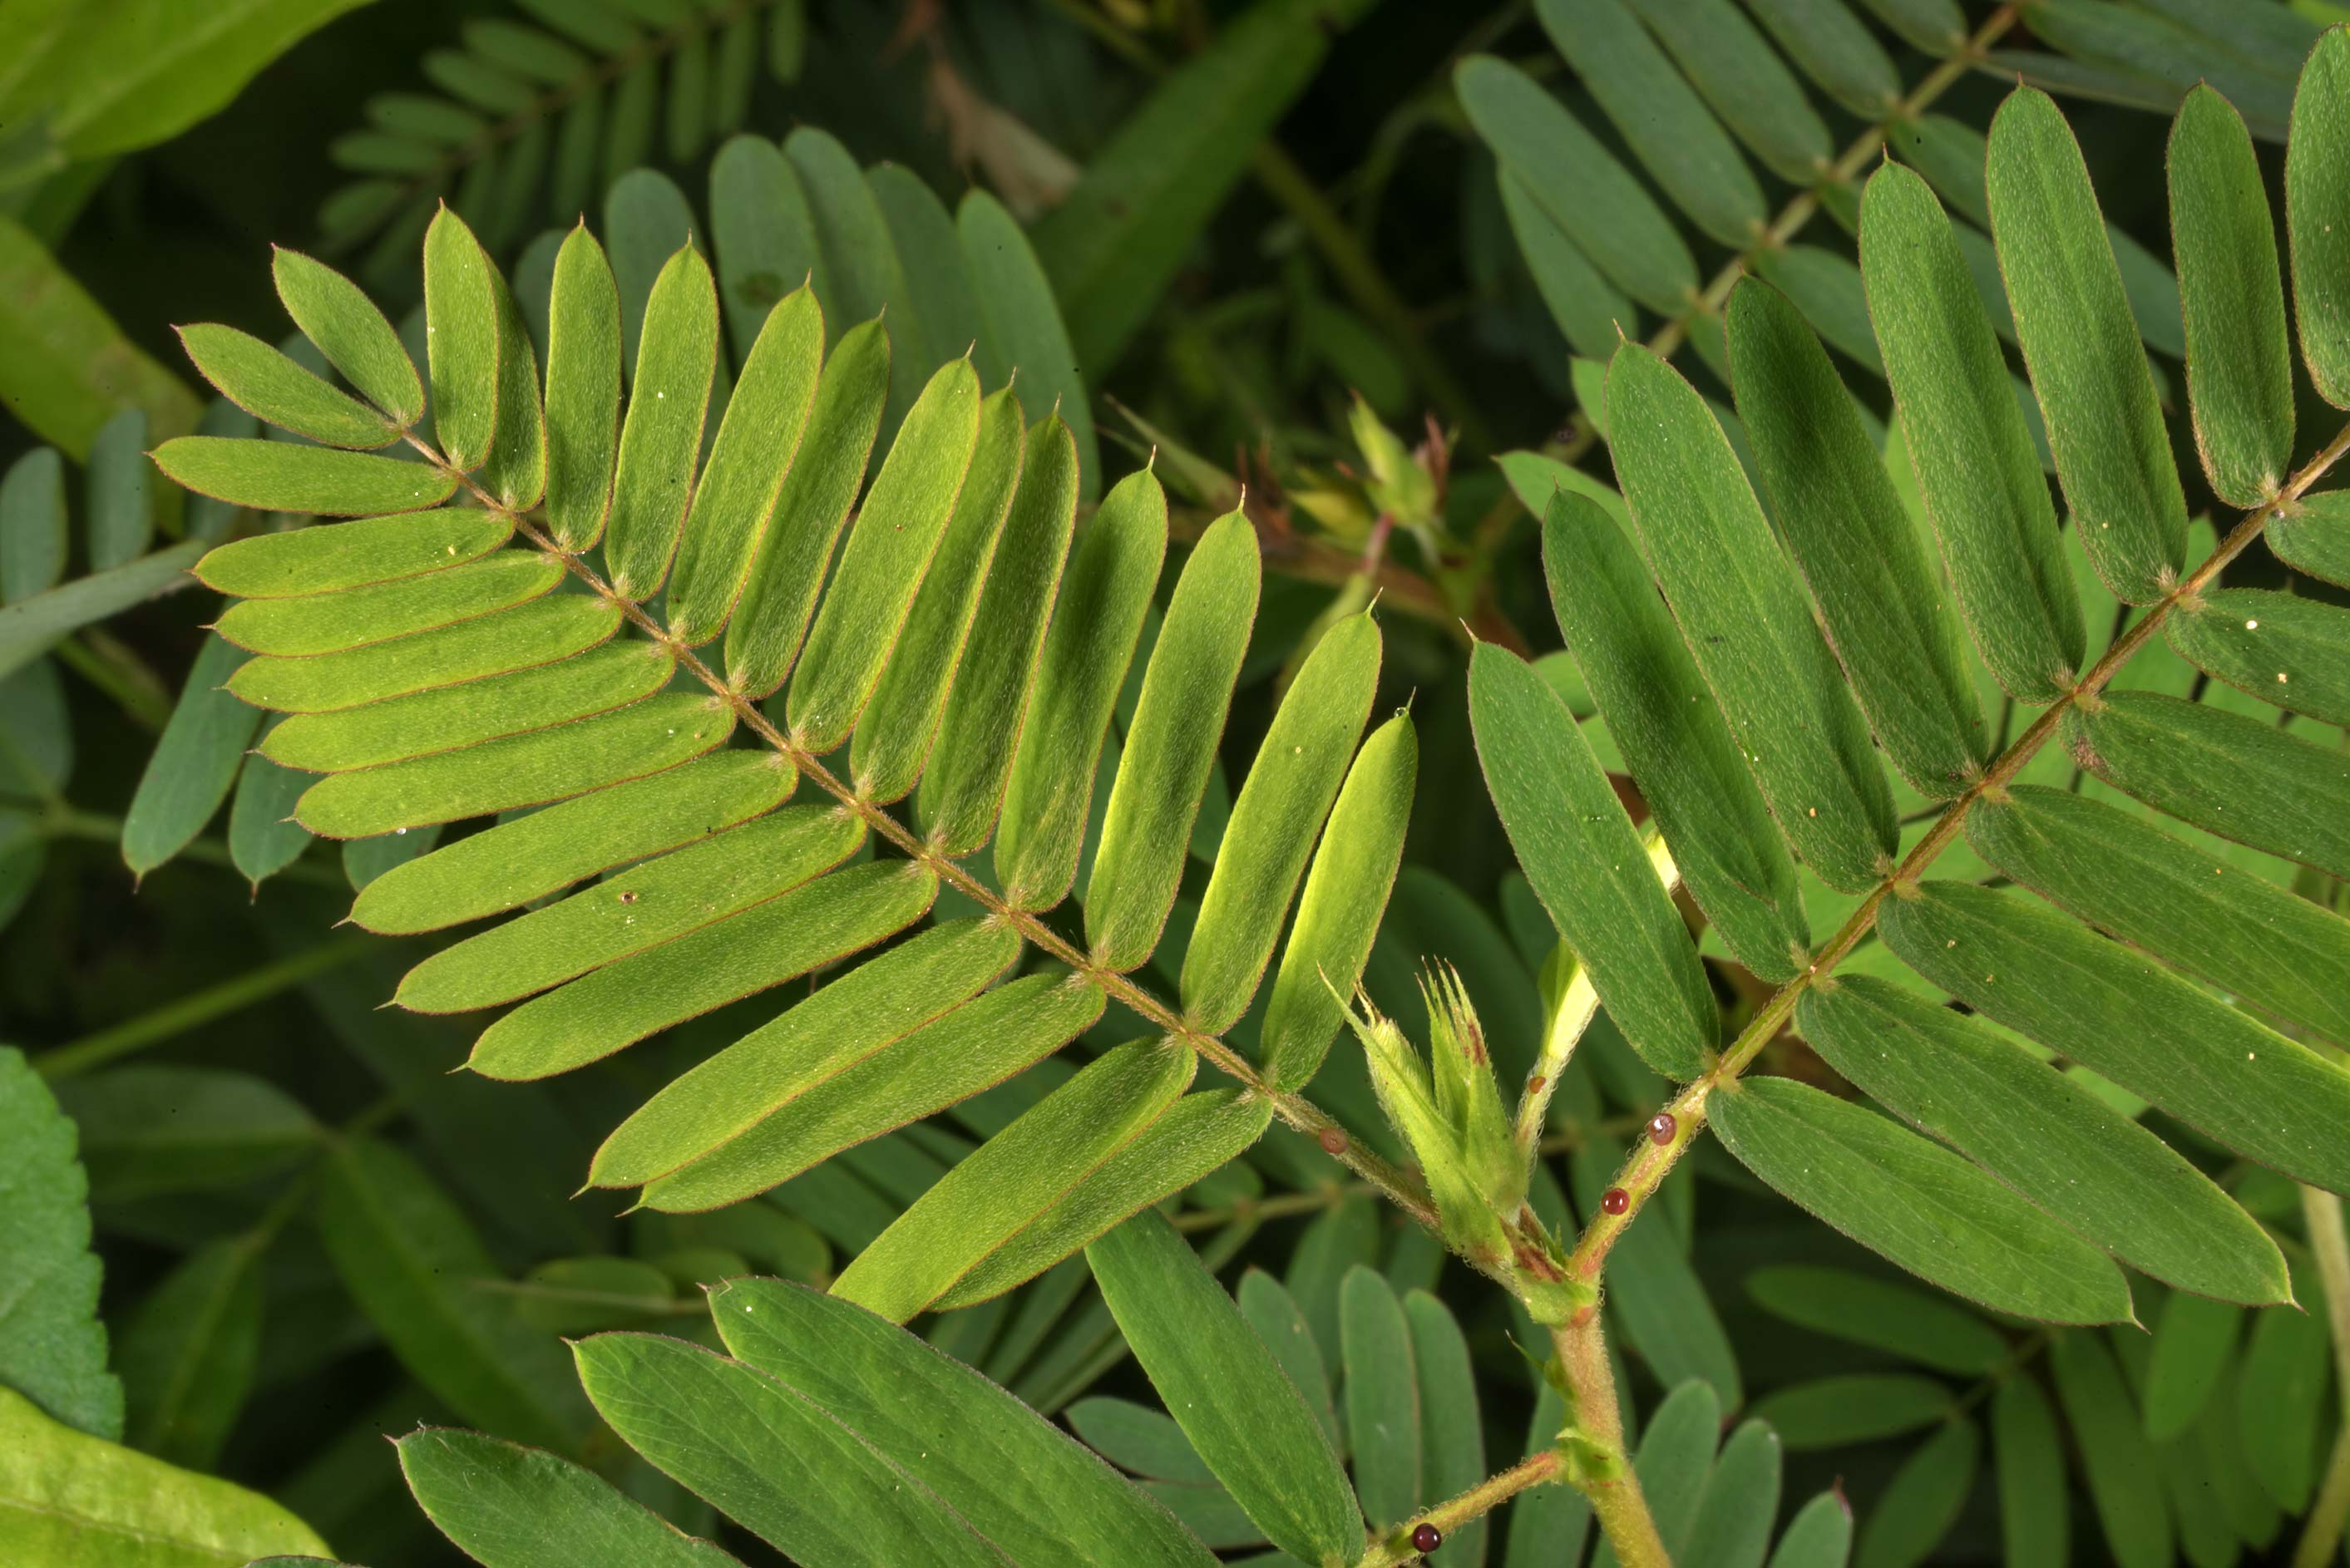 Leaves of Partridge pea (Cassia fasciculata) on...National Forest. Richards, Texas